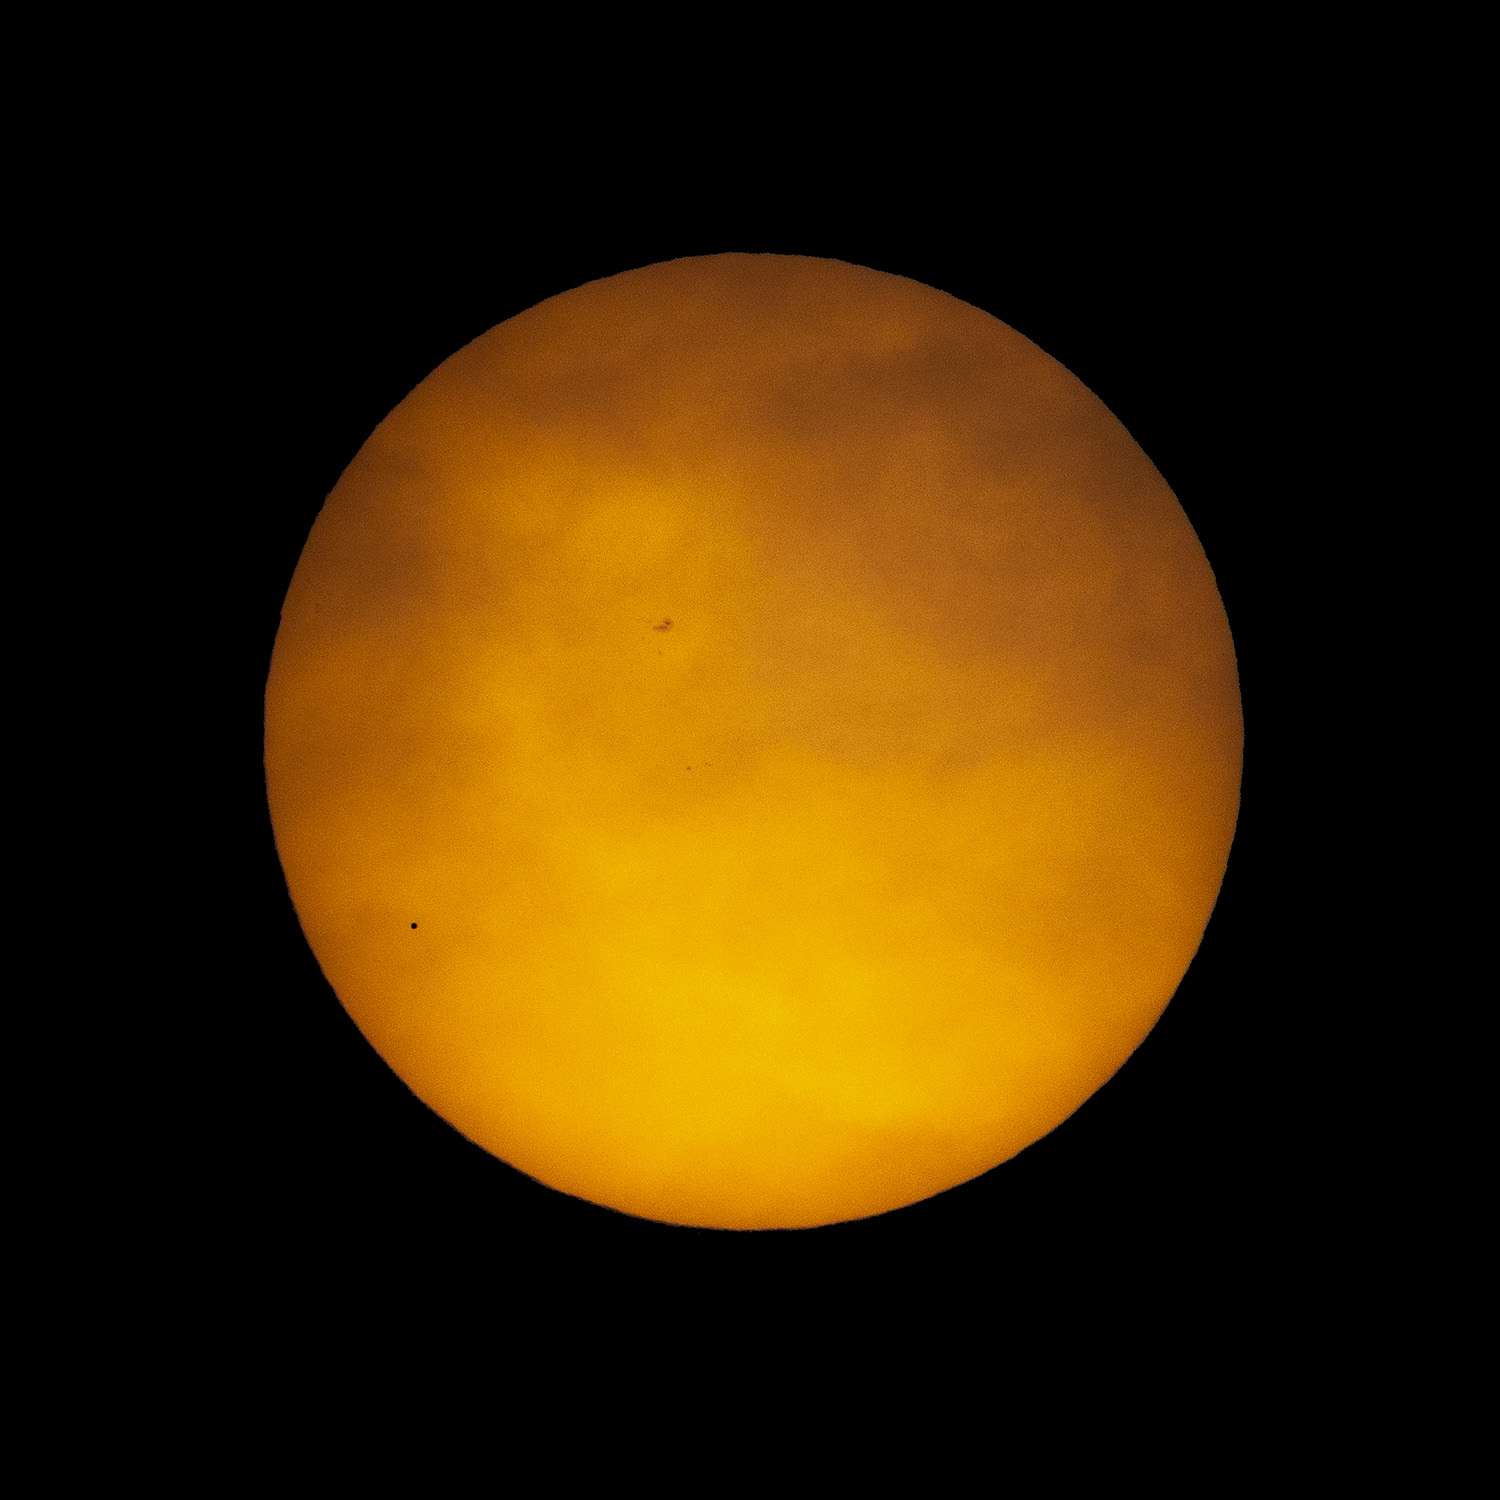 Transit of Mercury 2017